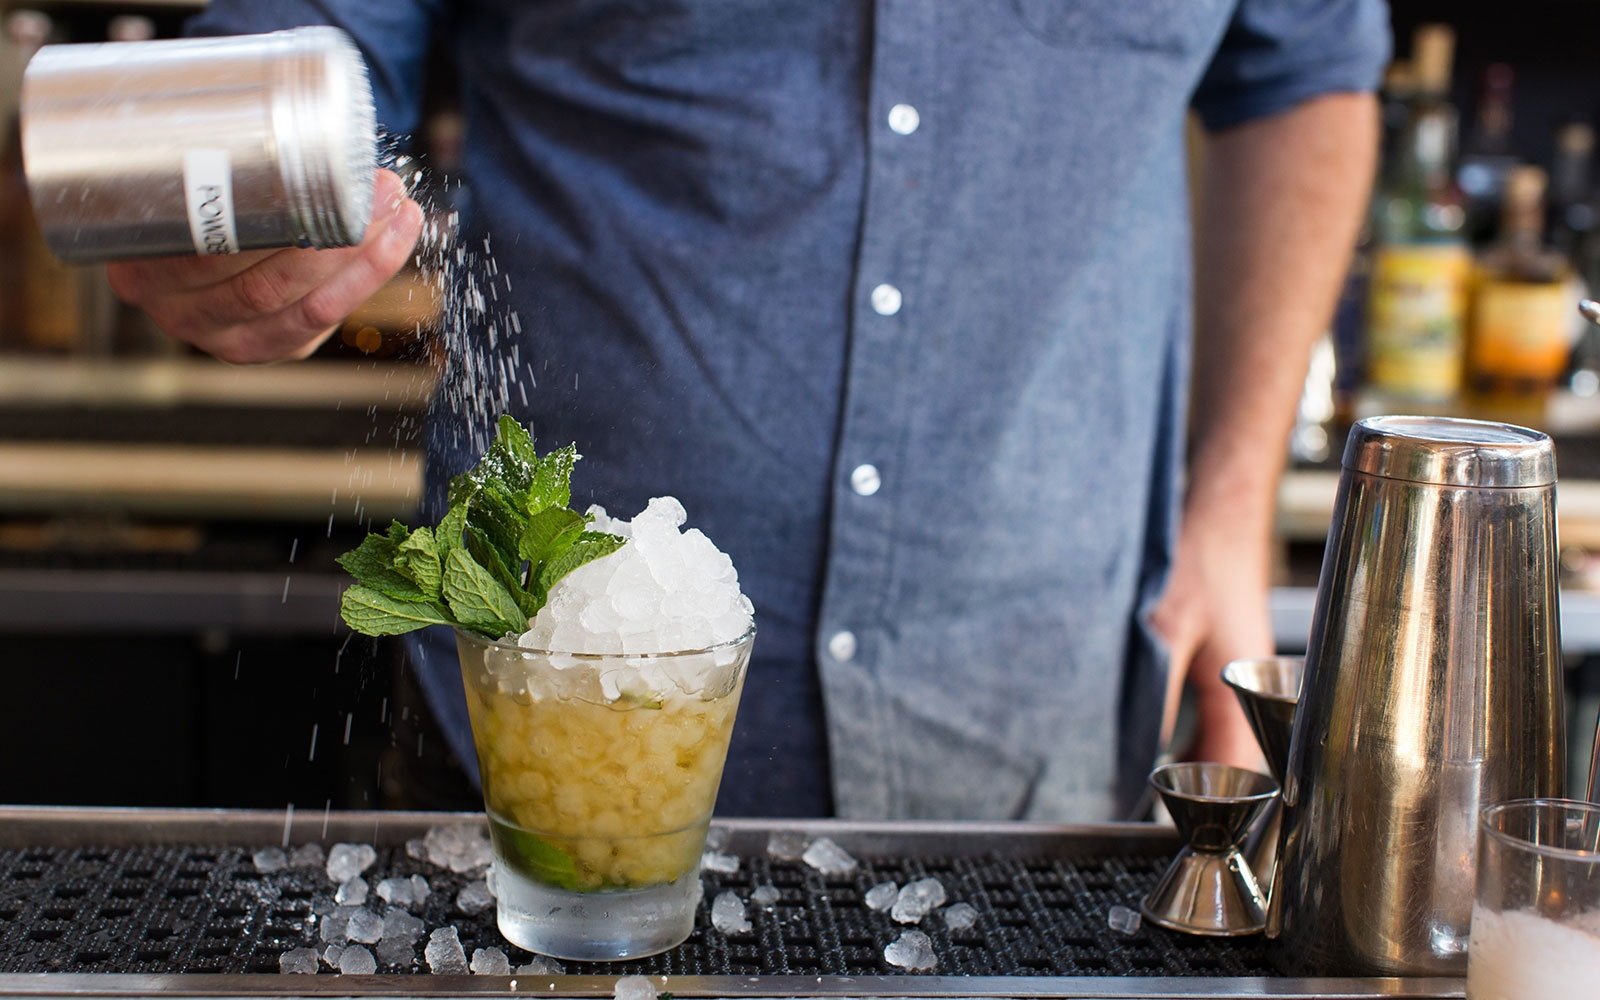 Bartender making mint julep cocktail